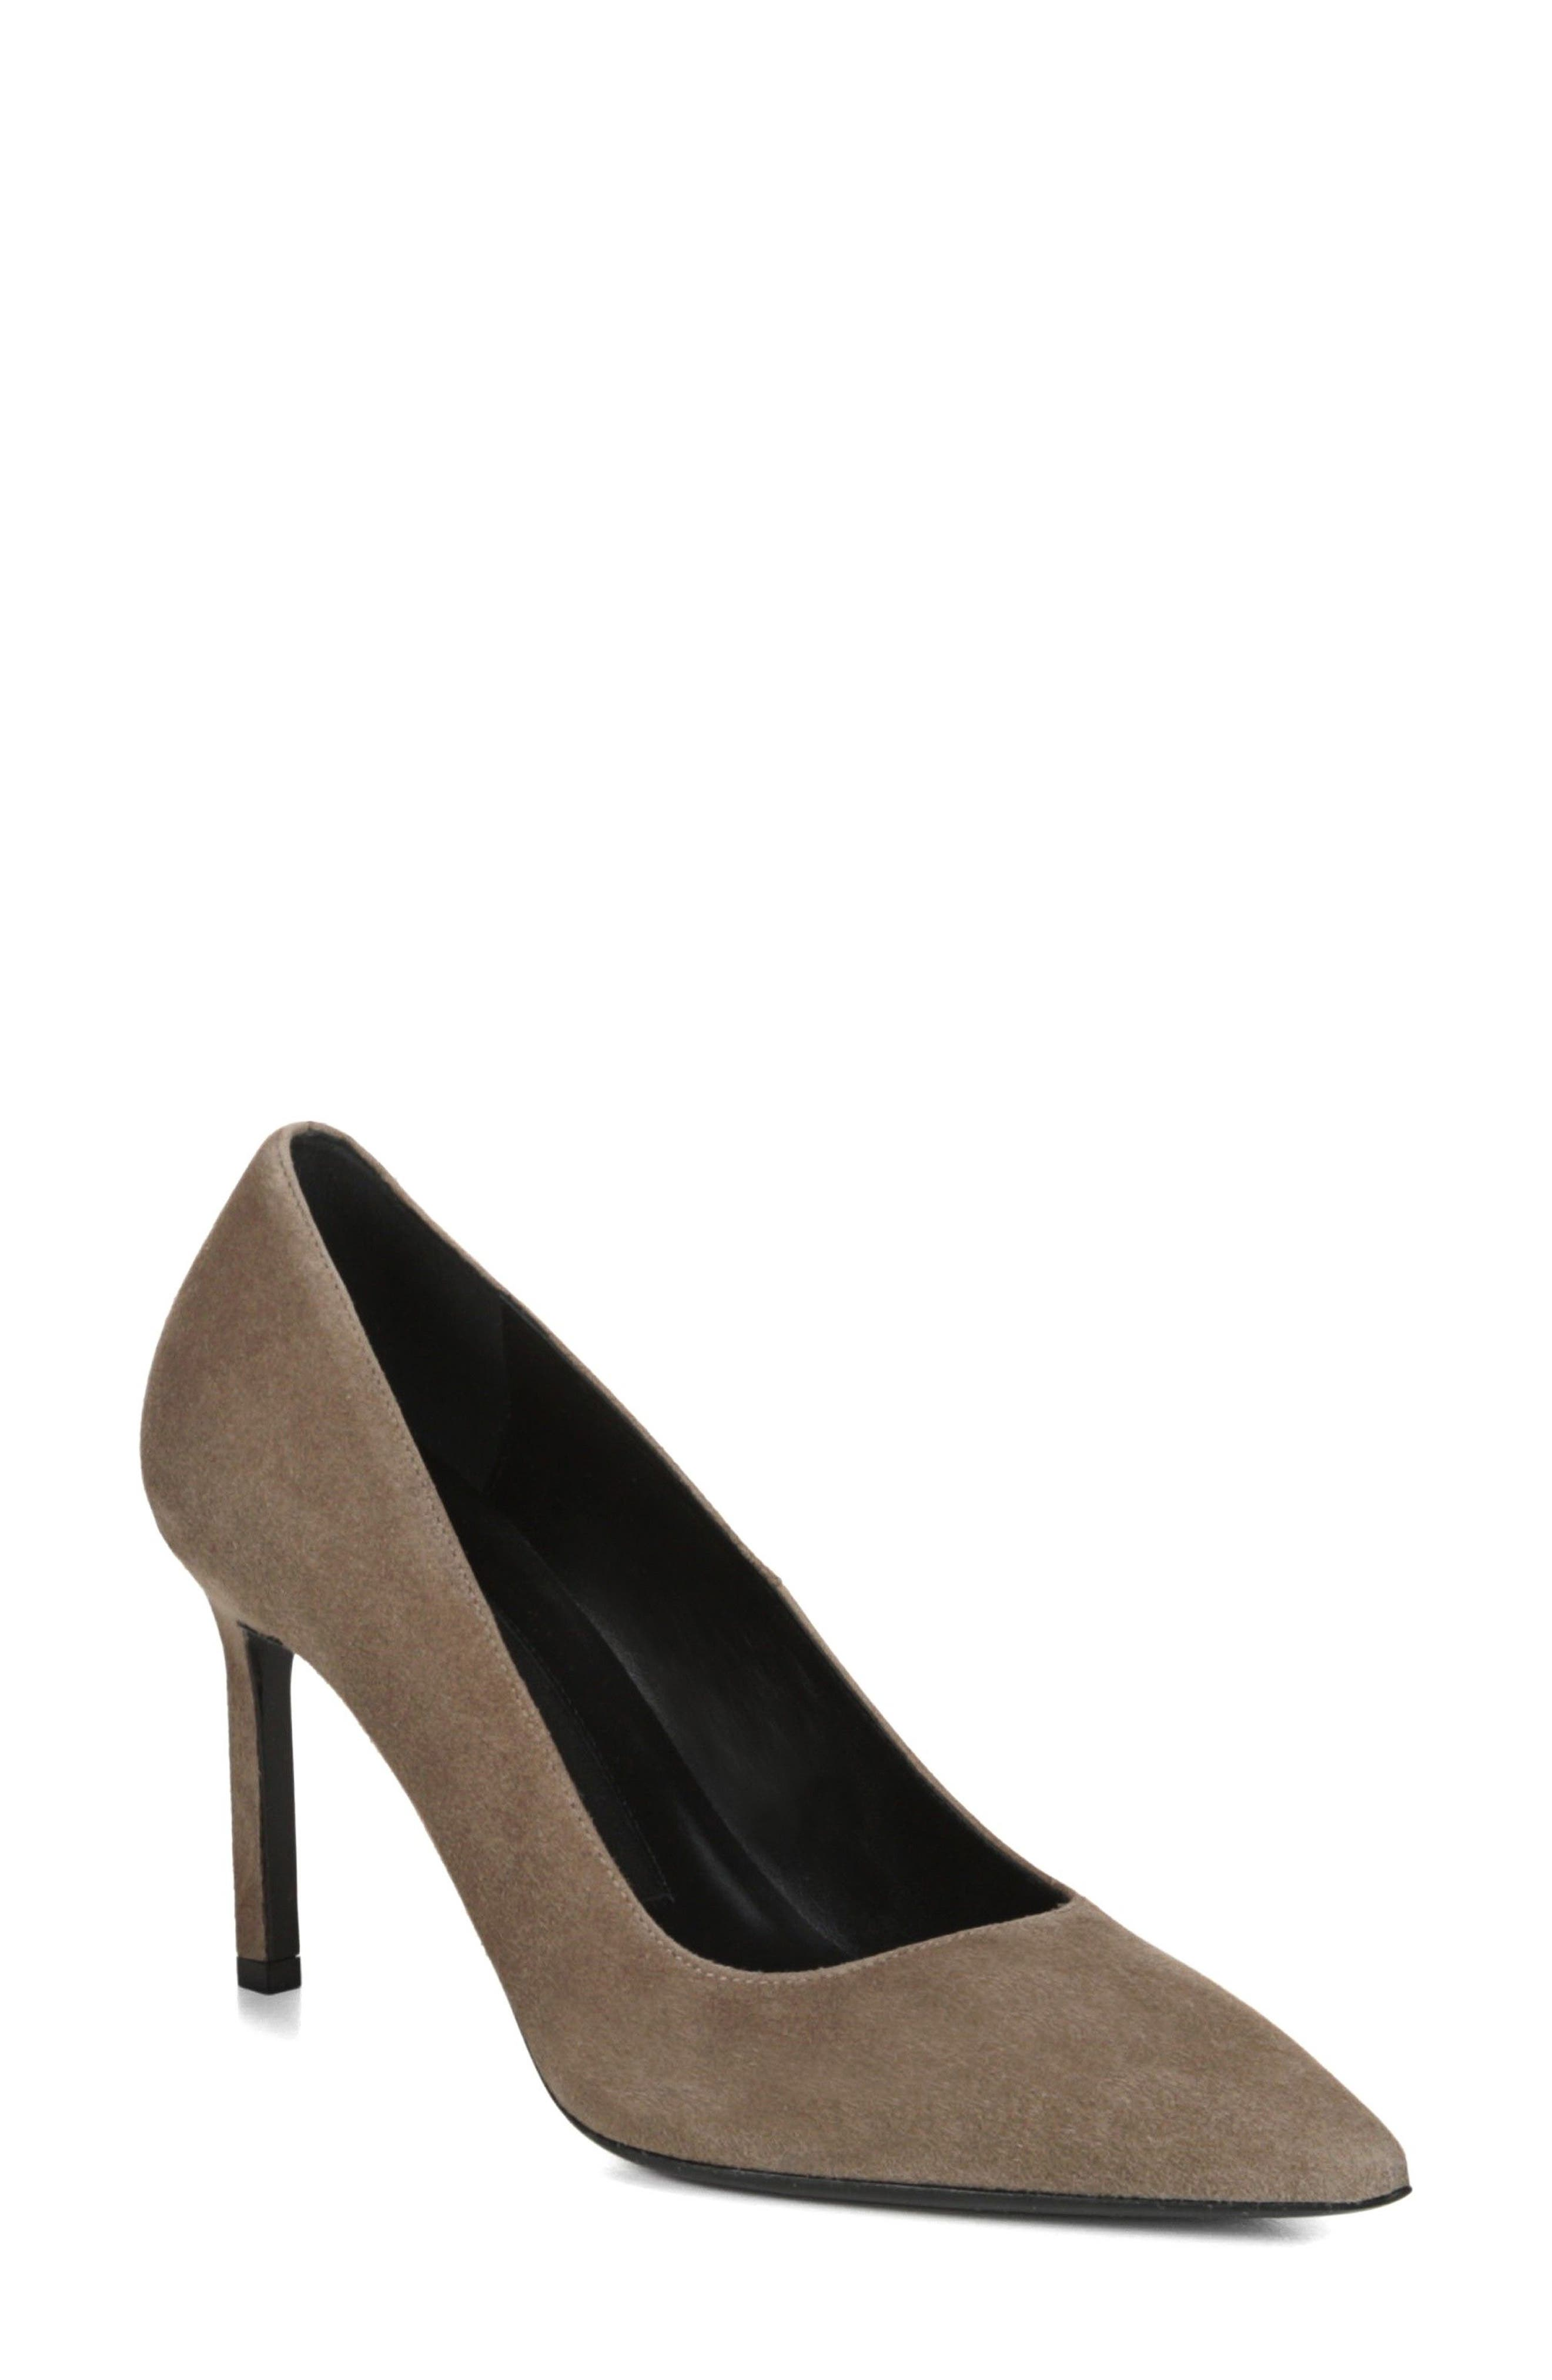 Nikole Pointy Toe Pump,                         Main,                         color, Mink Suede